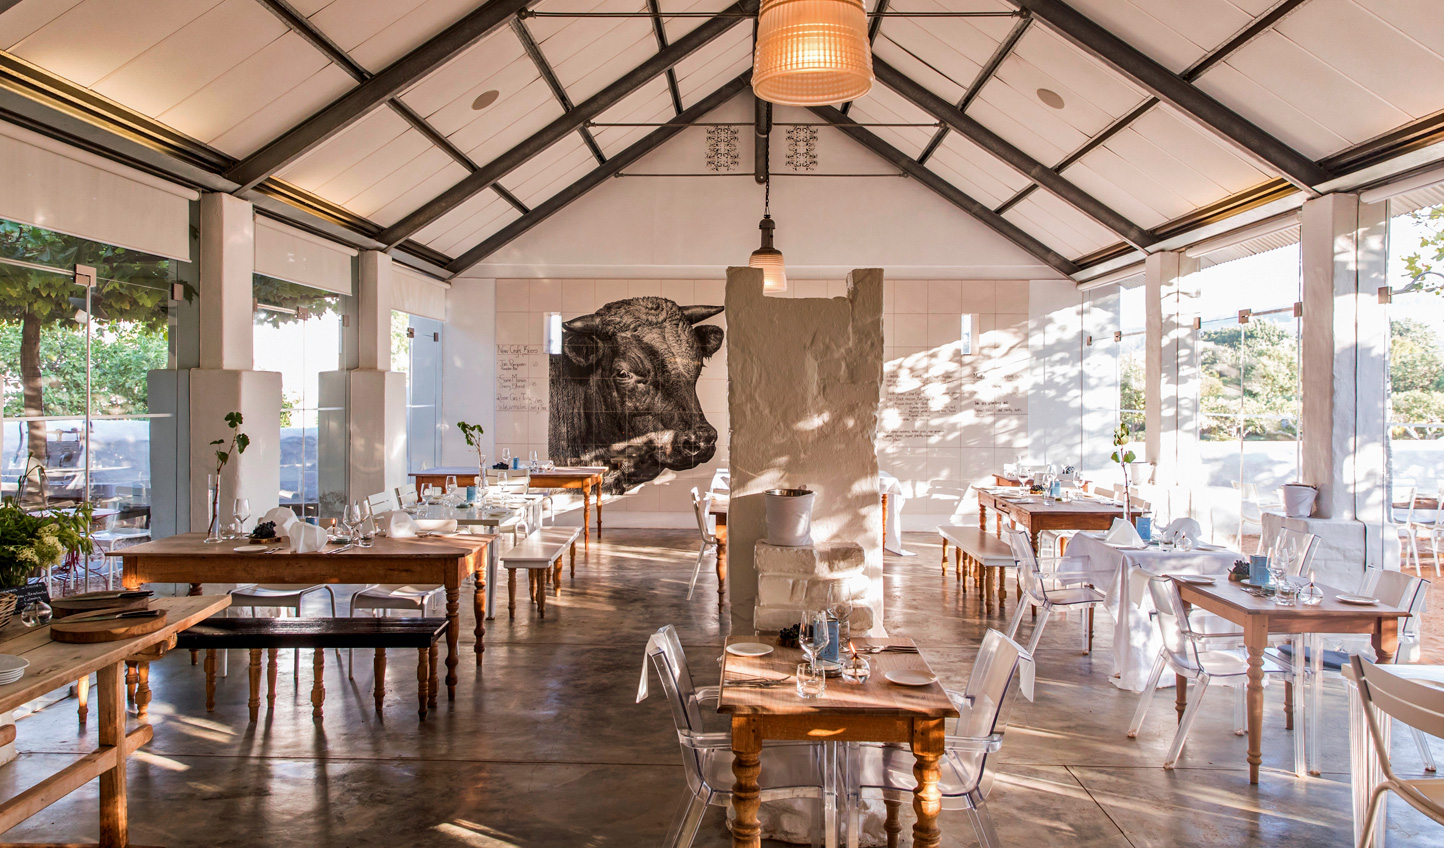 Sample South African cuisine at Babylonstoren